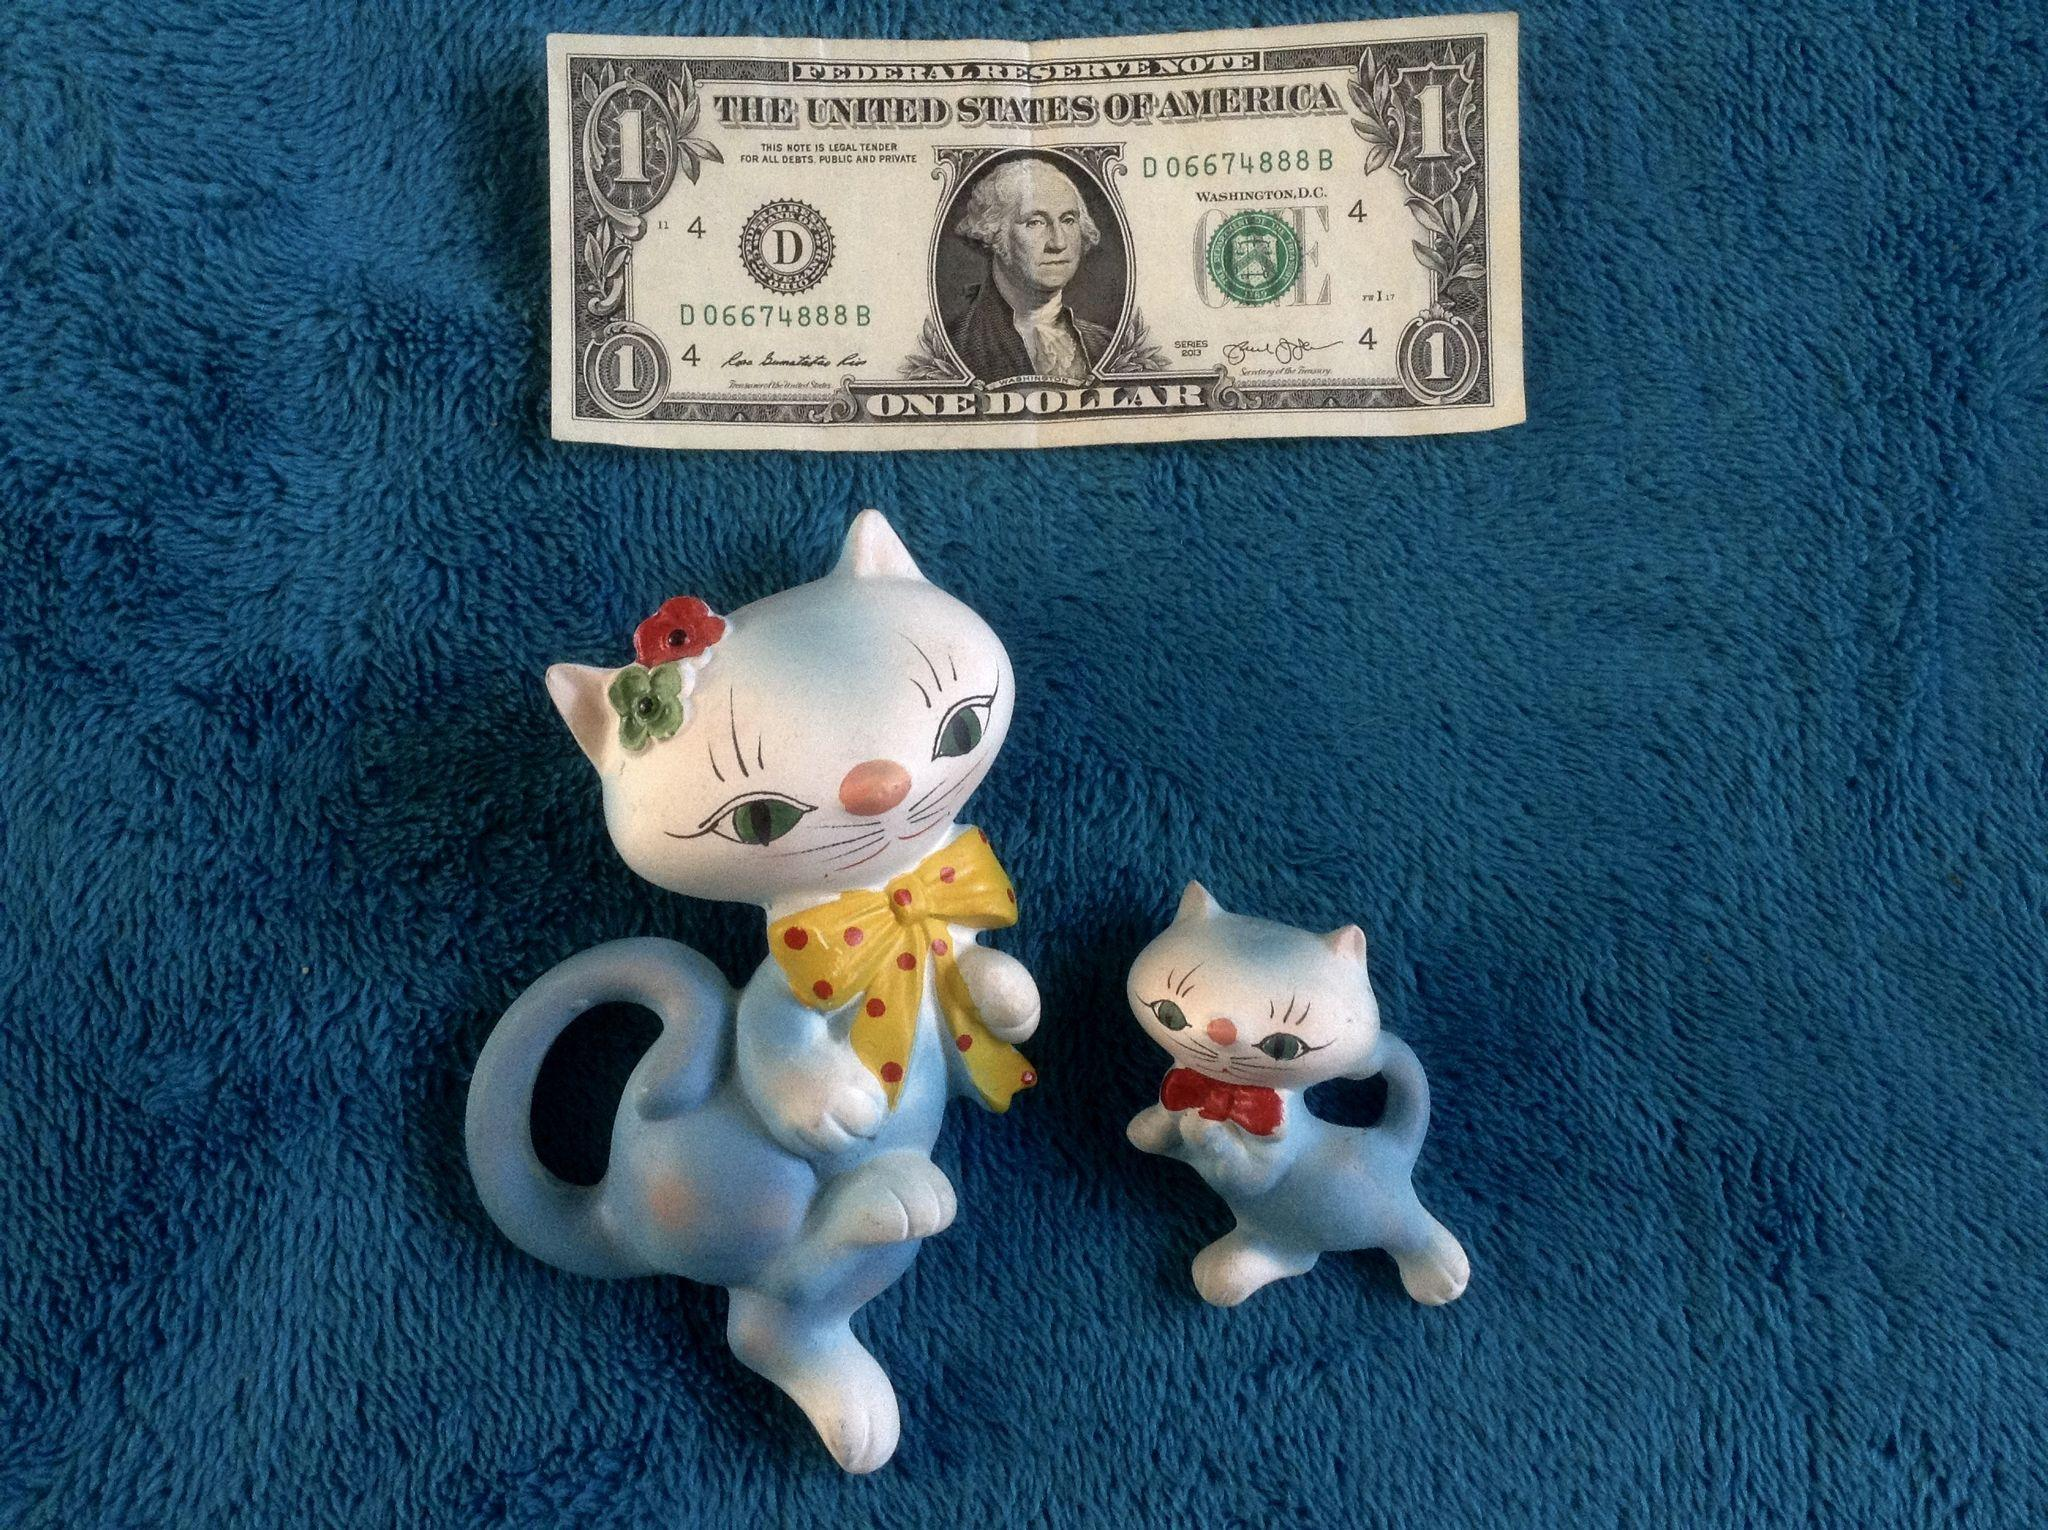 Adorable Kitty Cat Kitten Wall Plaques Chalkware Figurine Hangings From Gumgumfuninthesun On